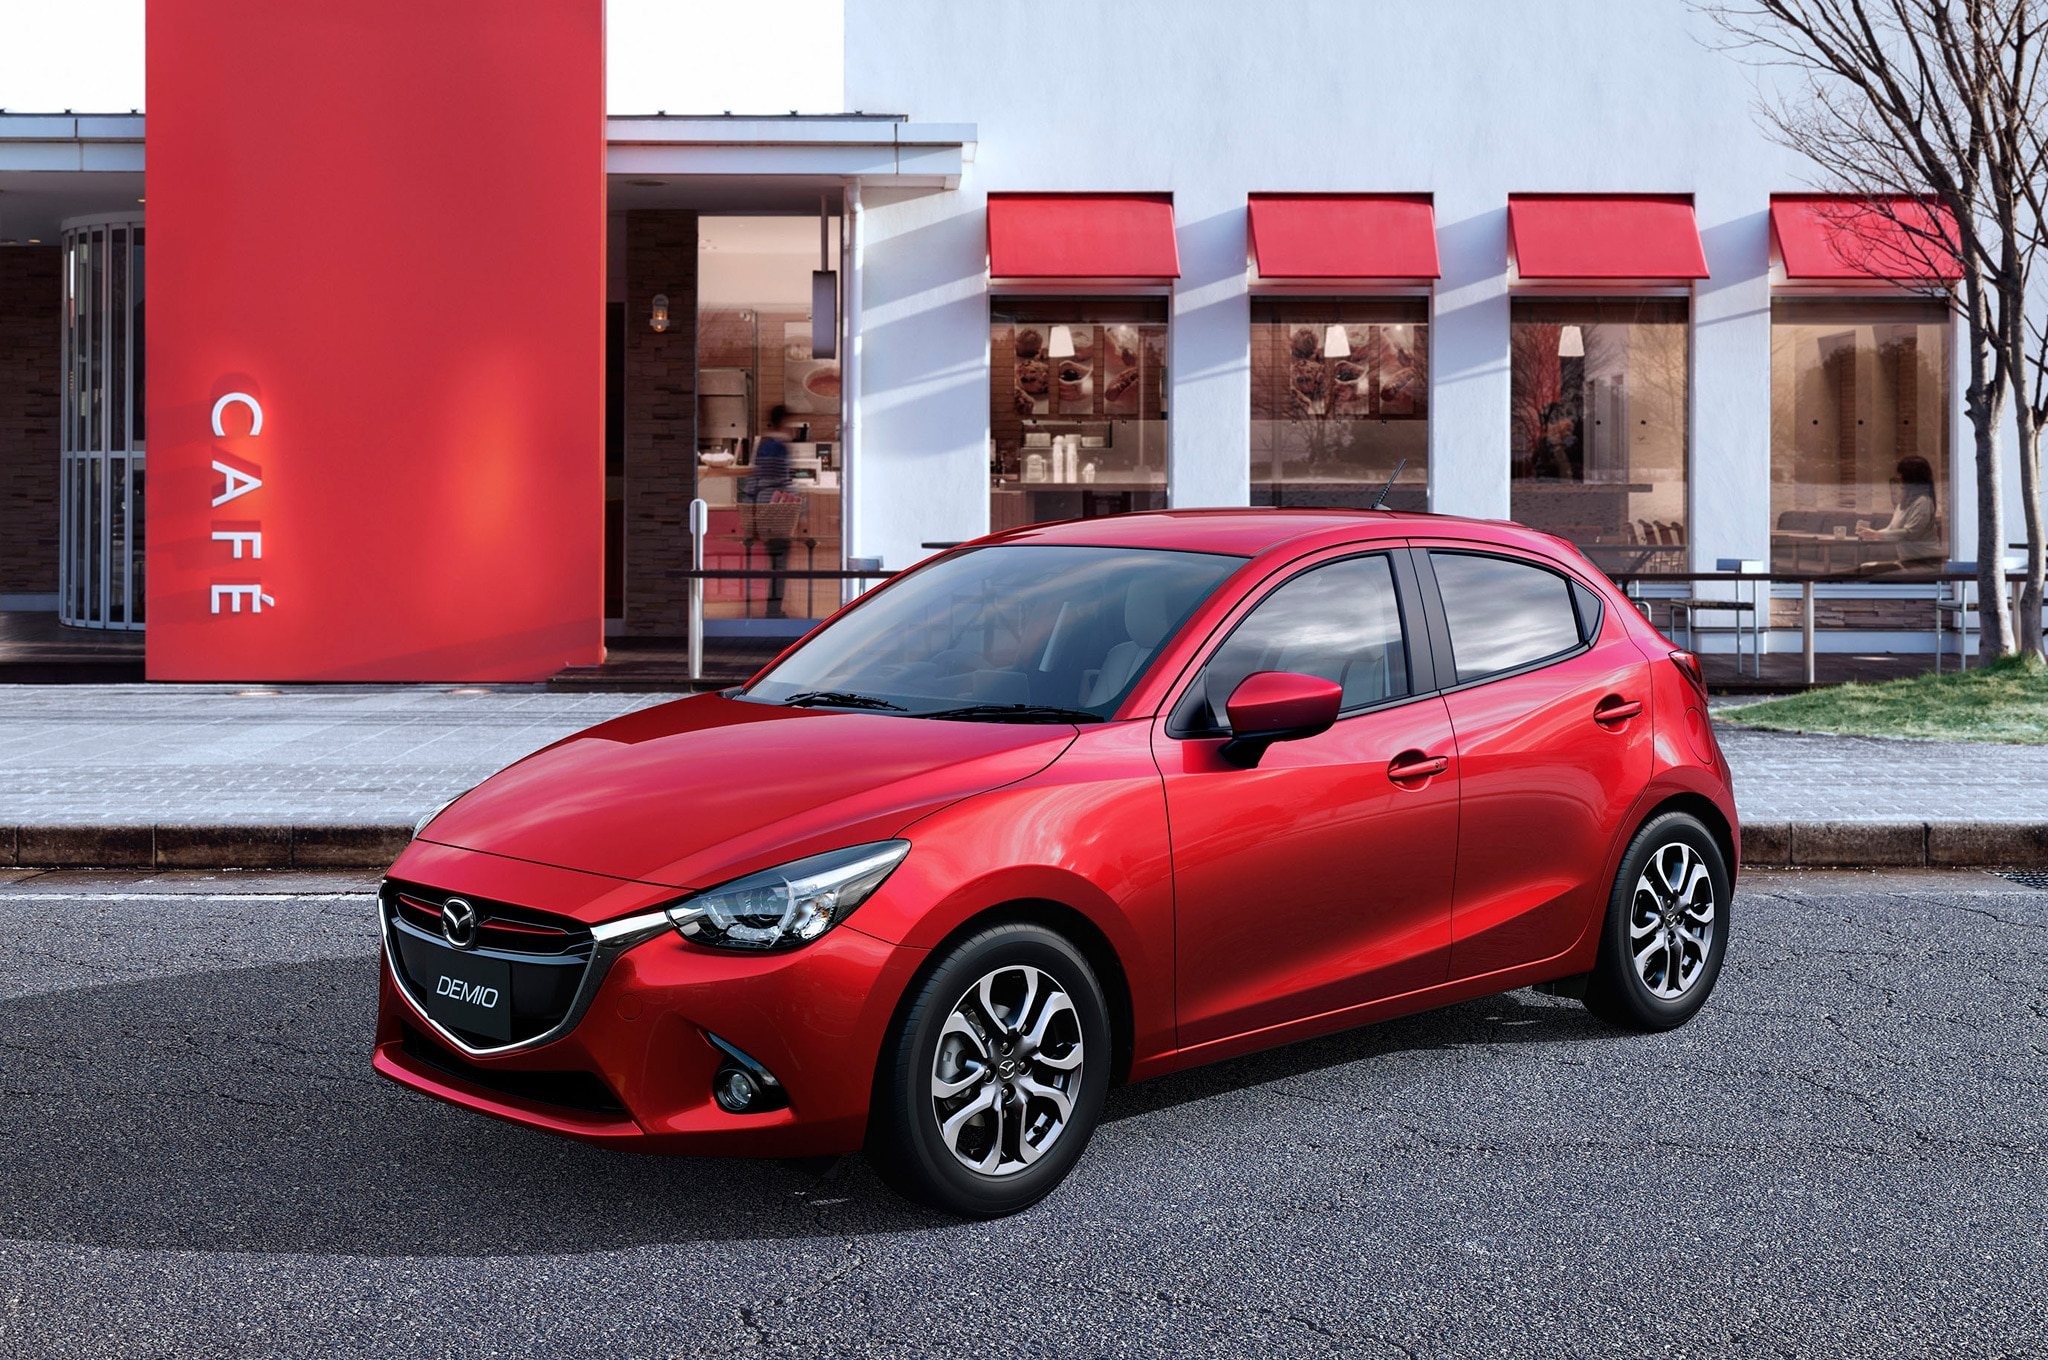 2016 mazda 2 production begins in mexico. Black Bedroom Furniture Sets. Home Design Ideas